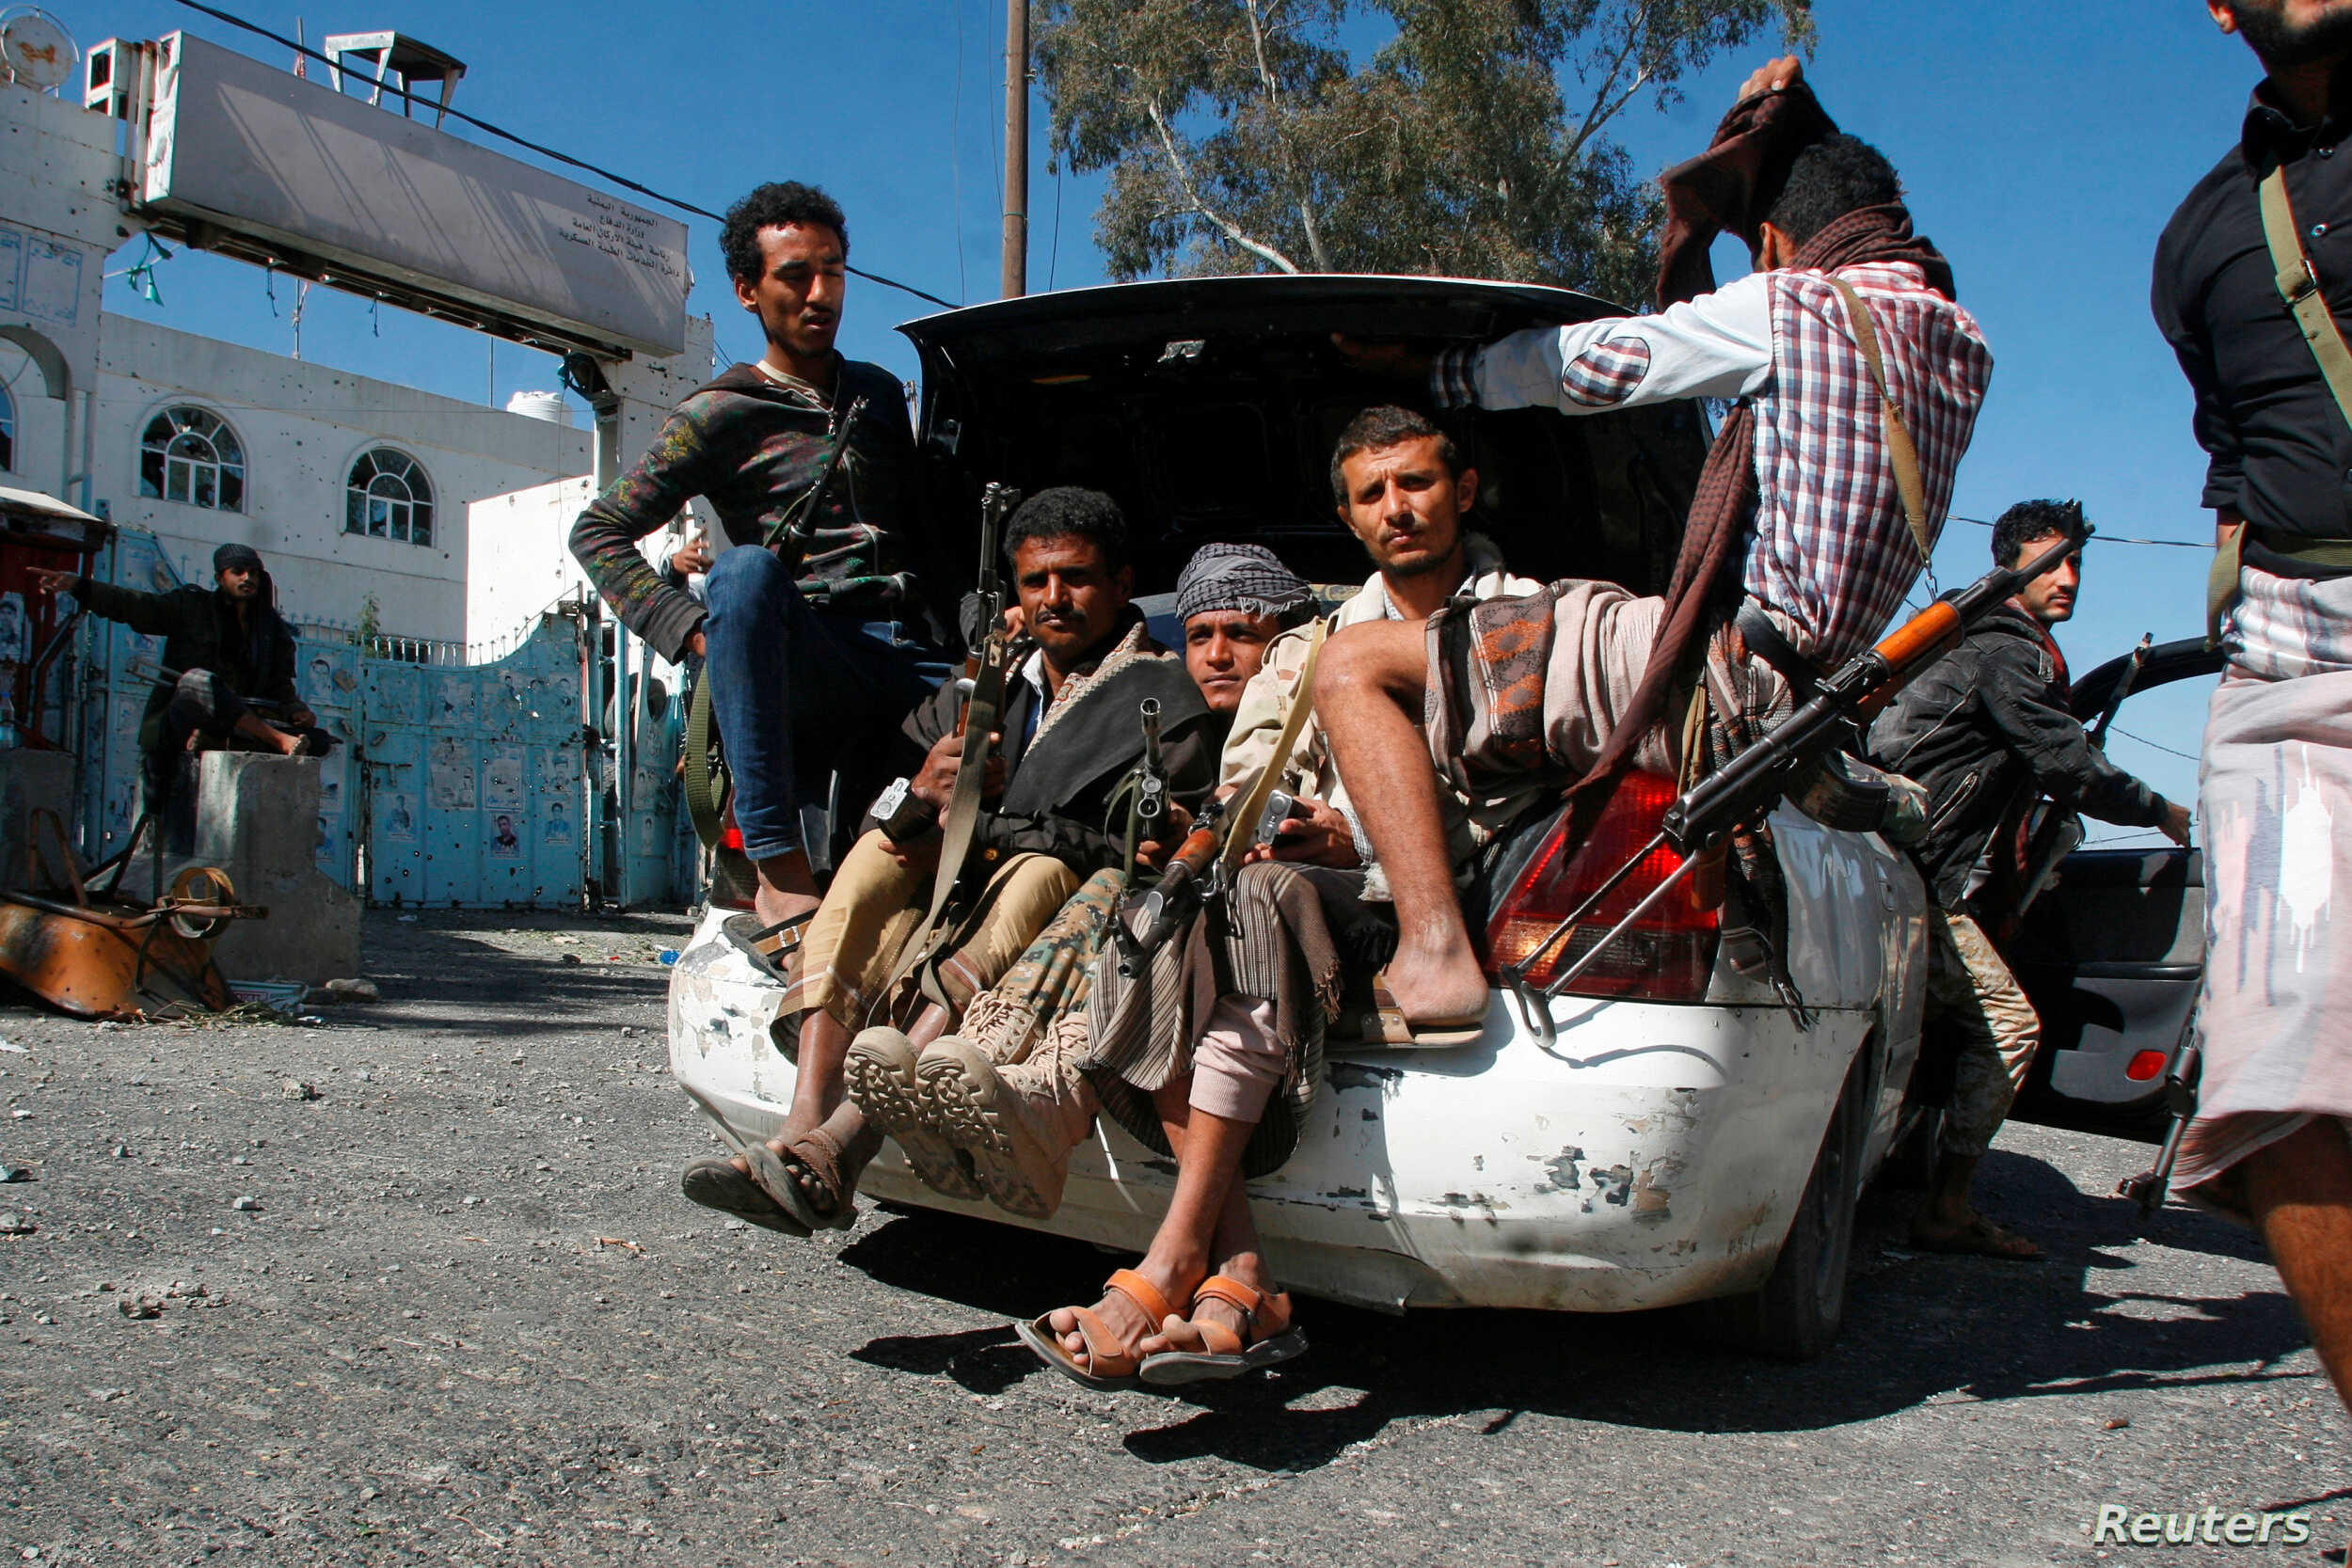 Pro-government fighters ride in the trunk of a car in the southwestern city of Taiz, Yemen, Nov. 21, 2016.